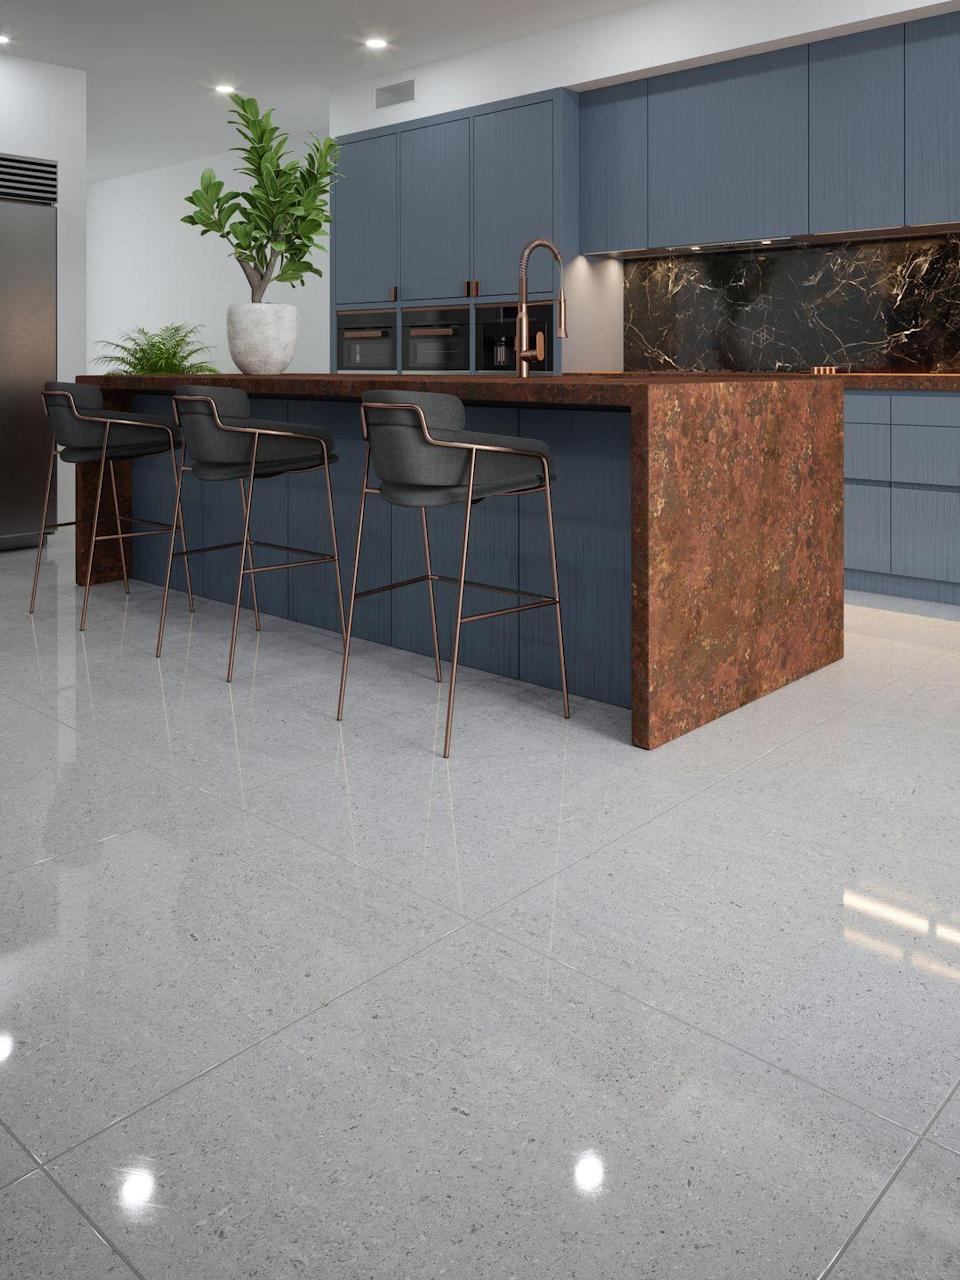 Photo credit: Wall and Floors